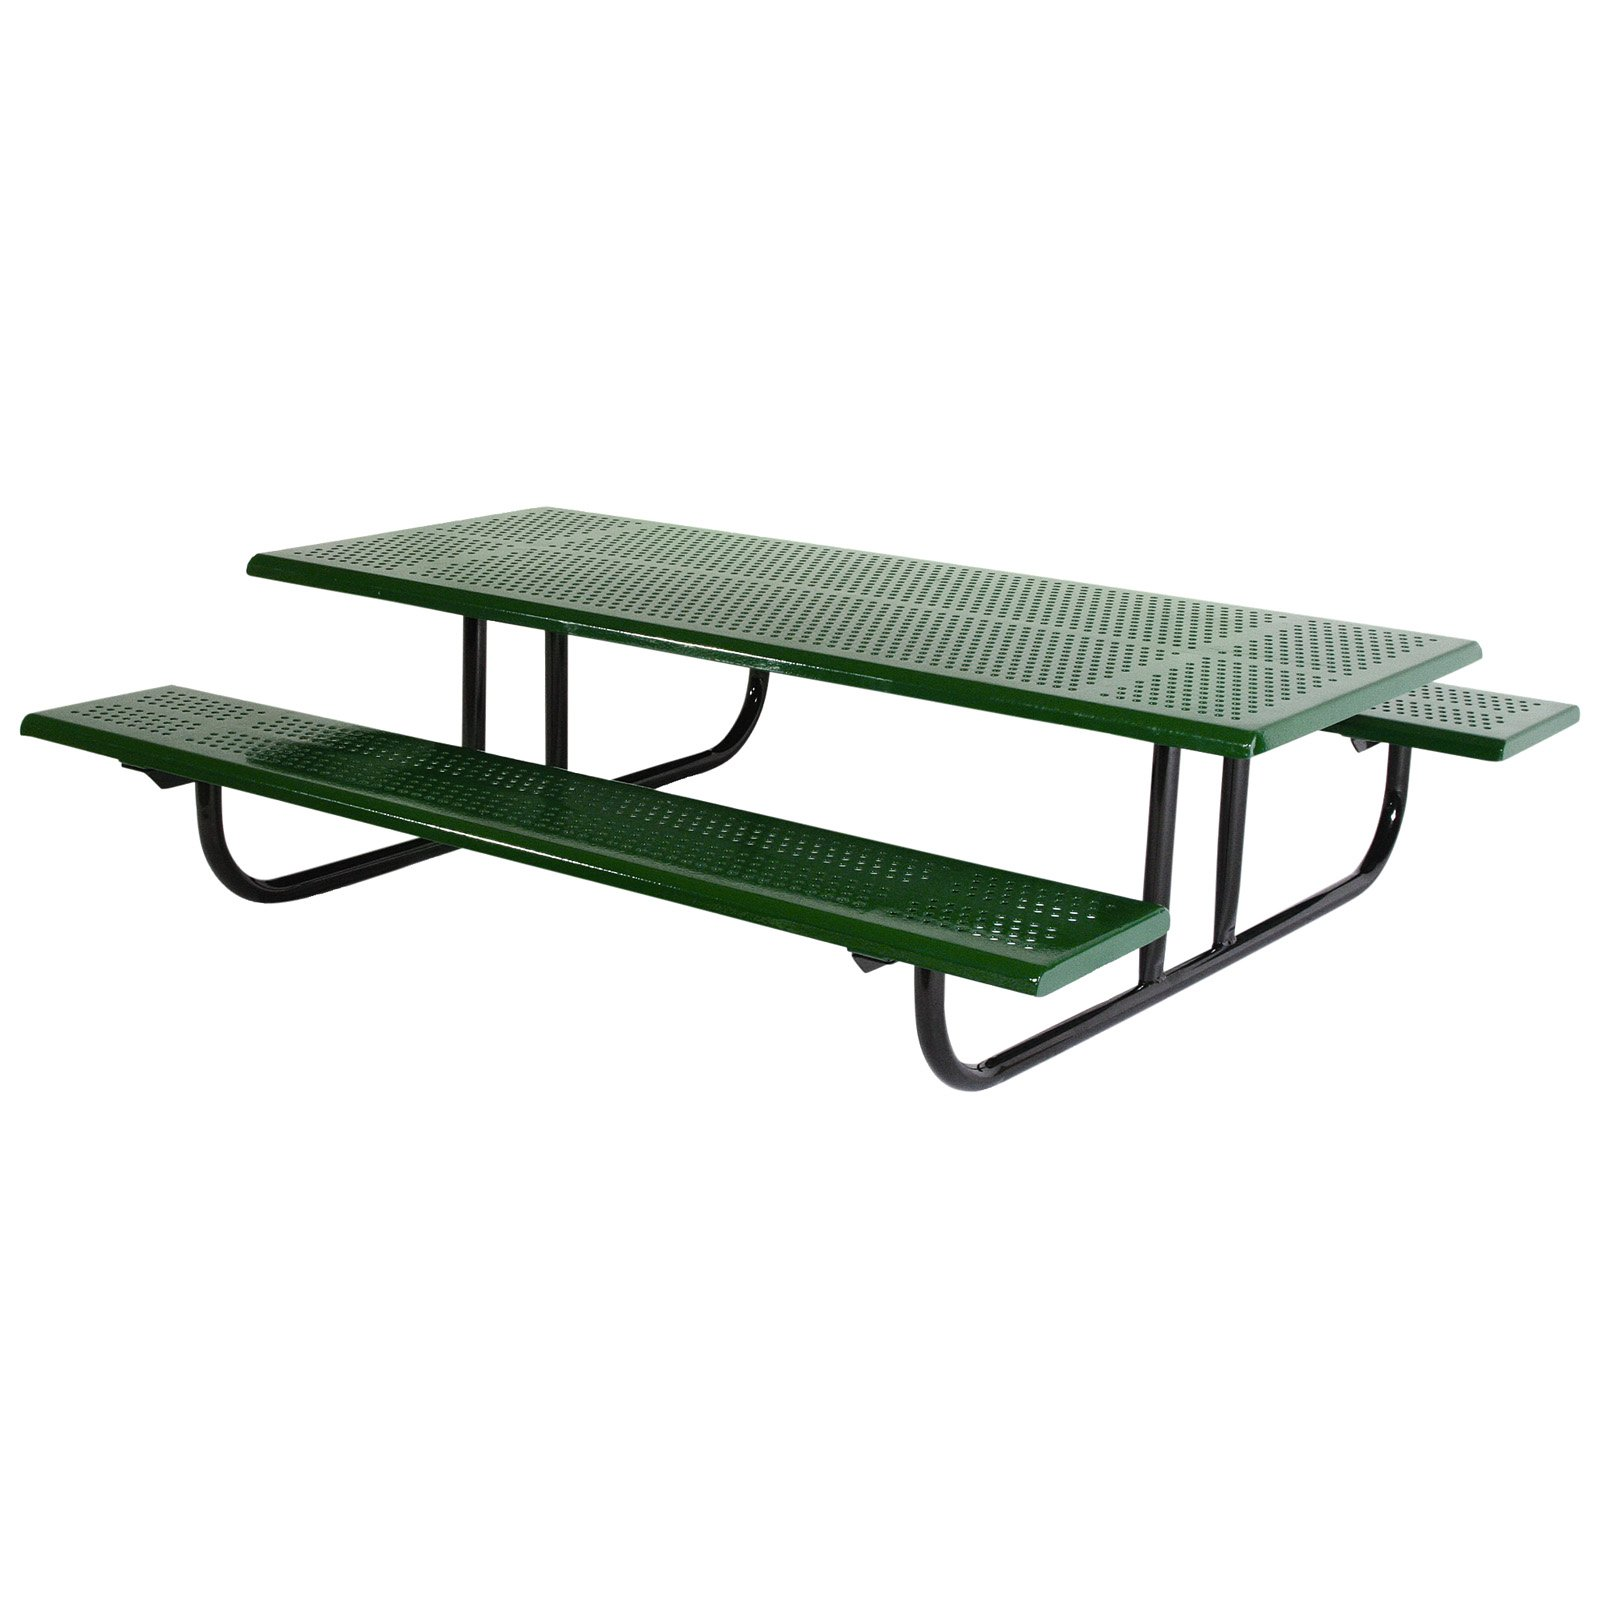 SportsPlay Early Years 8 ft. Perforated Thermoplastic Steel Picnic ...